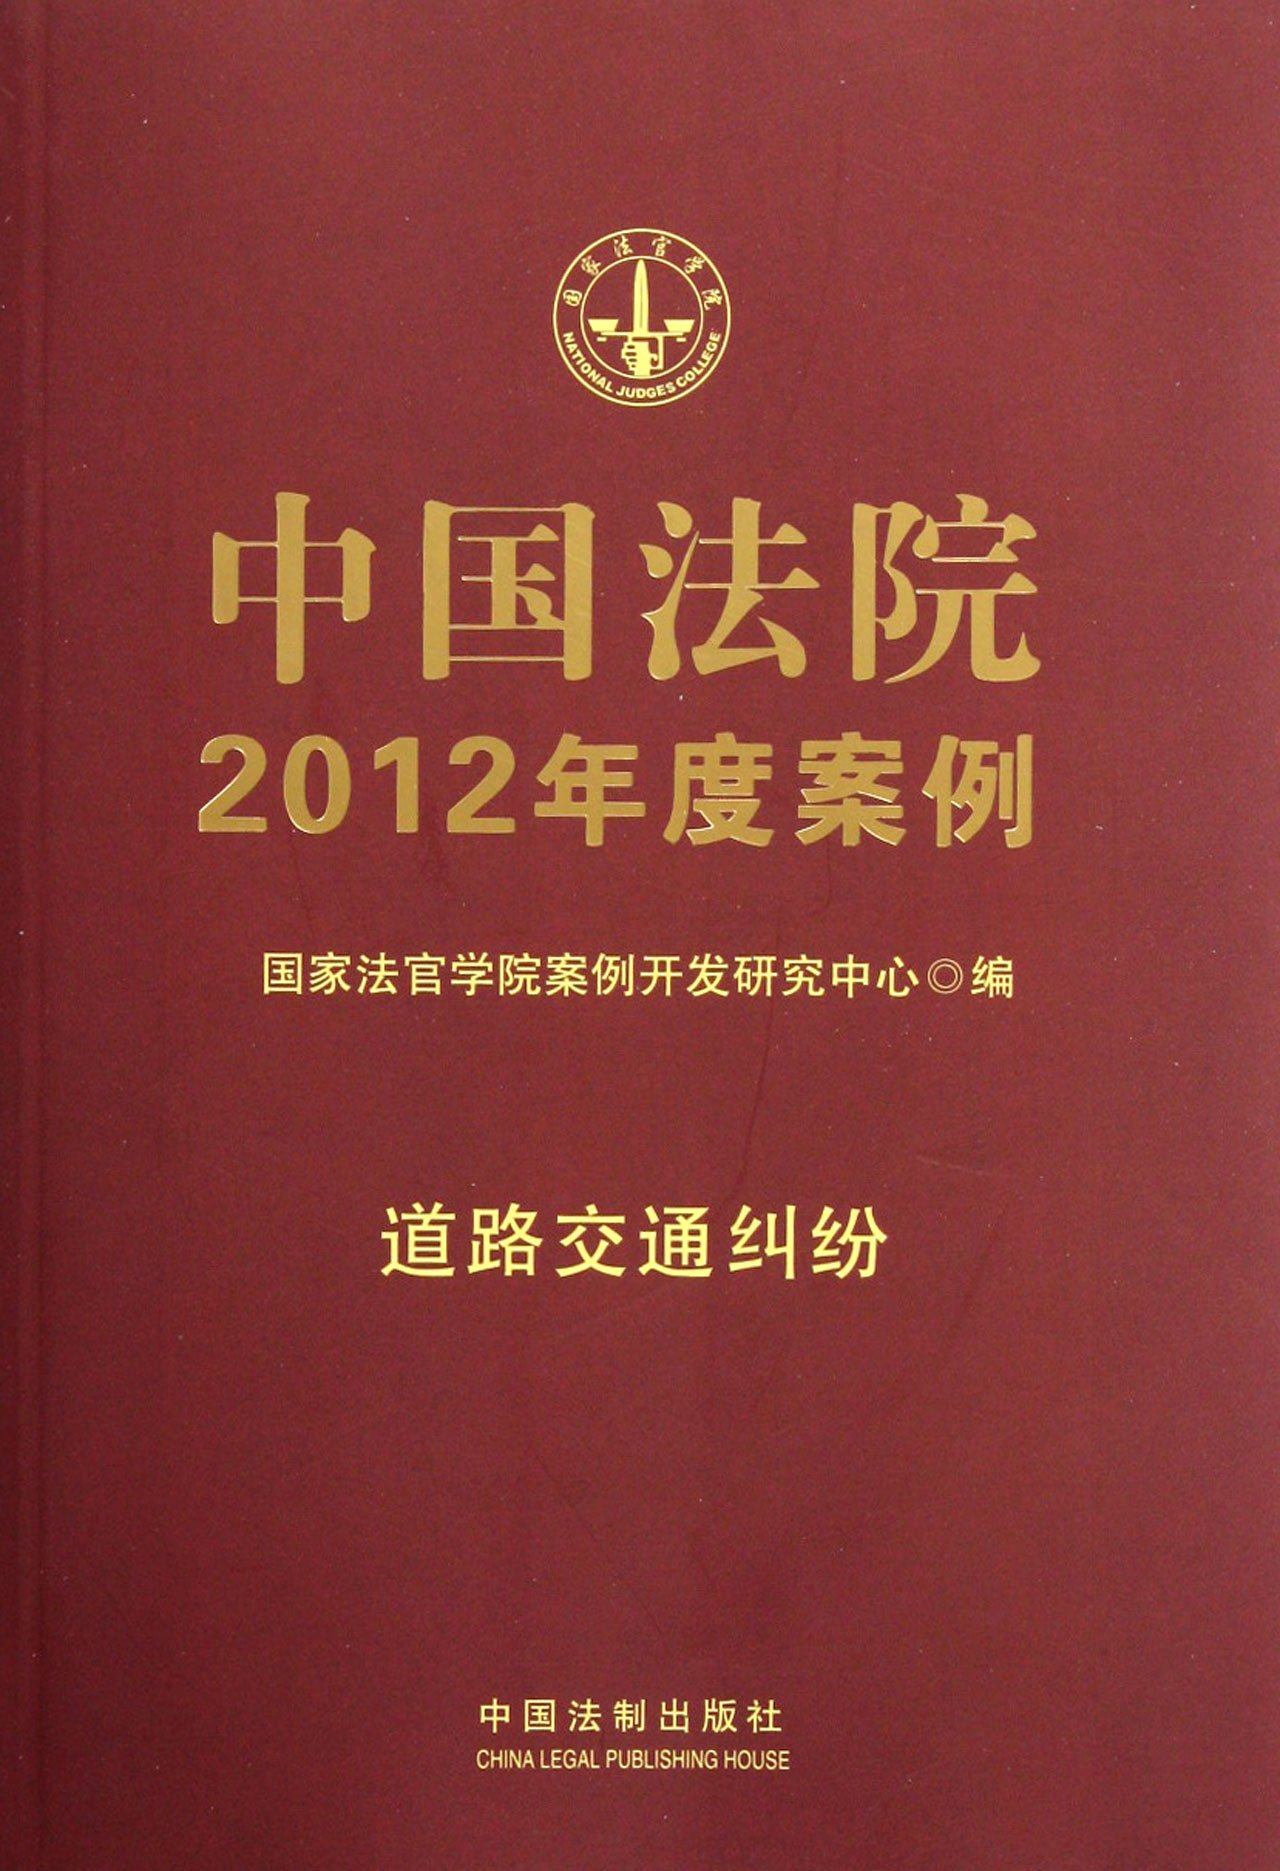 Download Road Traffic Disputes-Cases of 2012 in Chinese Courts-10 (Chinese Edition) ebook